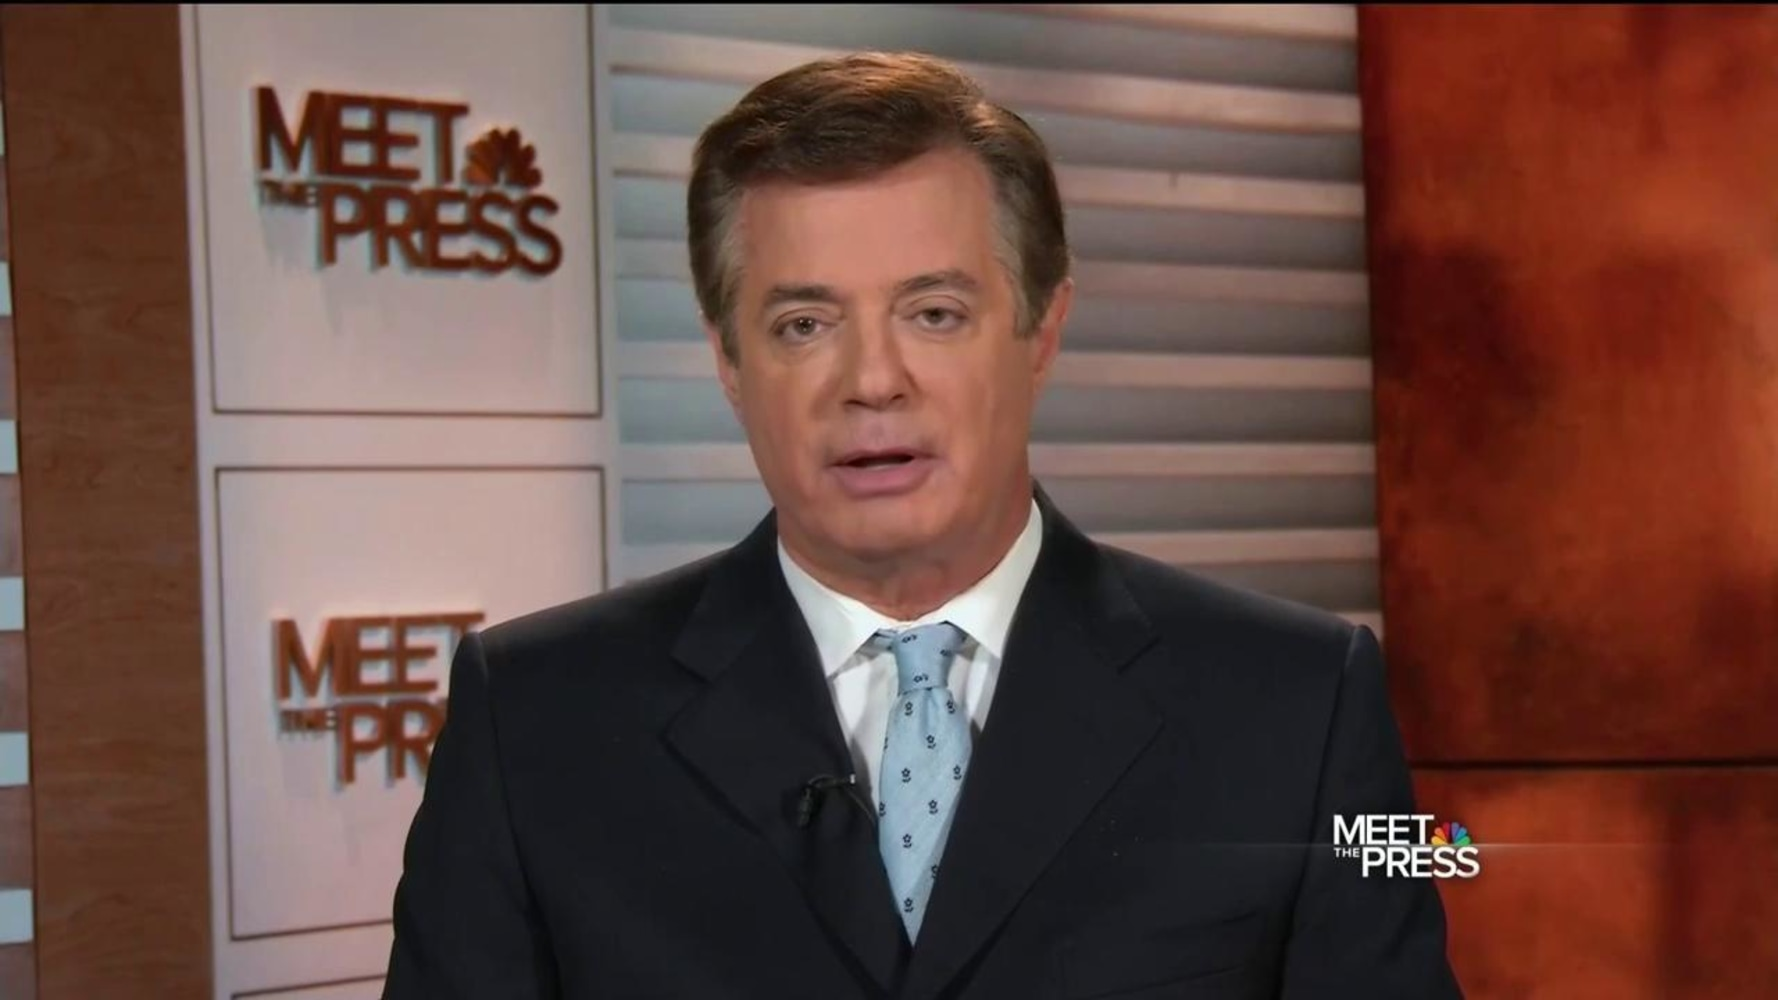 Trump campaign chief Manafort resigns after being pushed aside